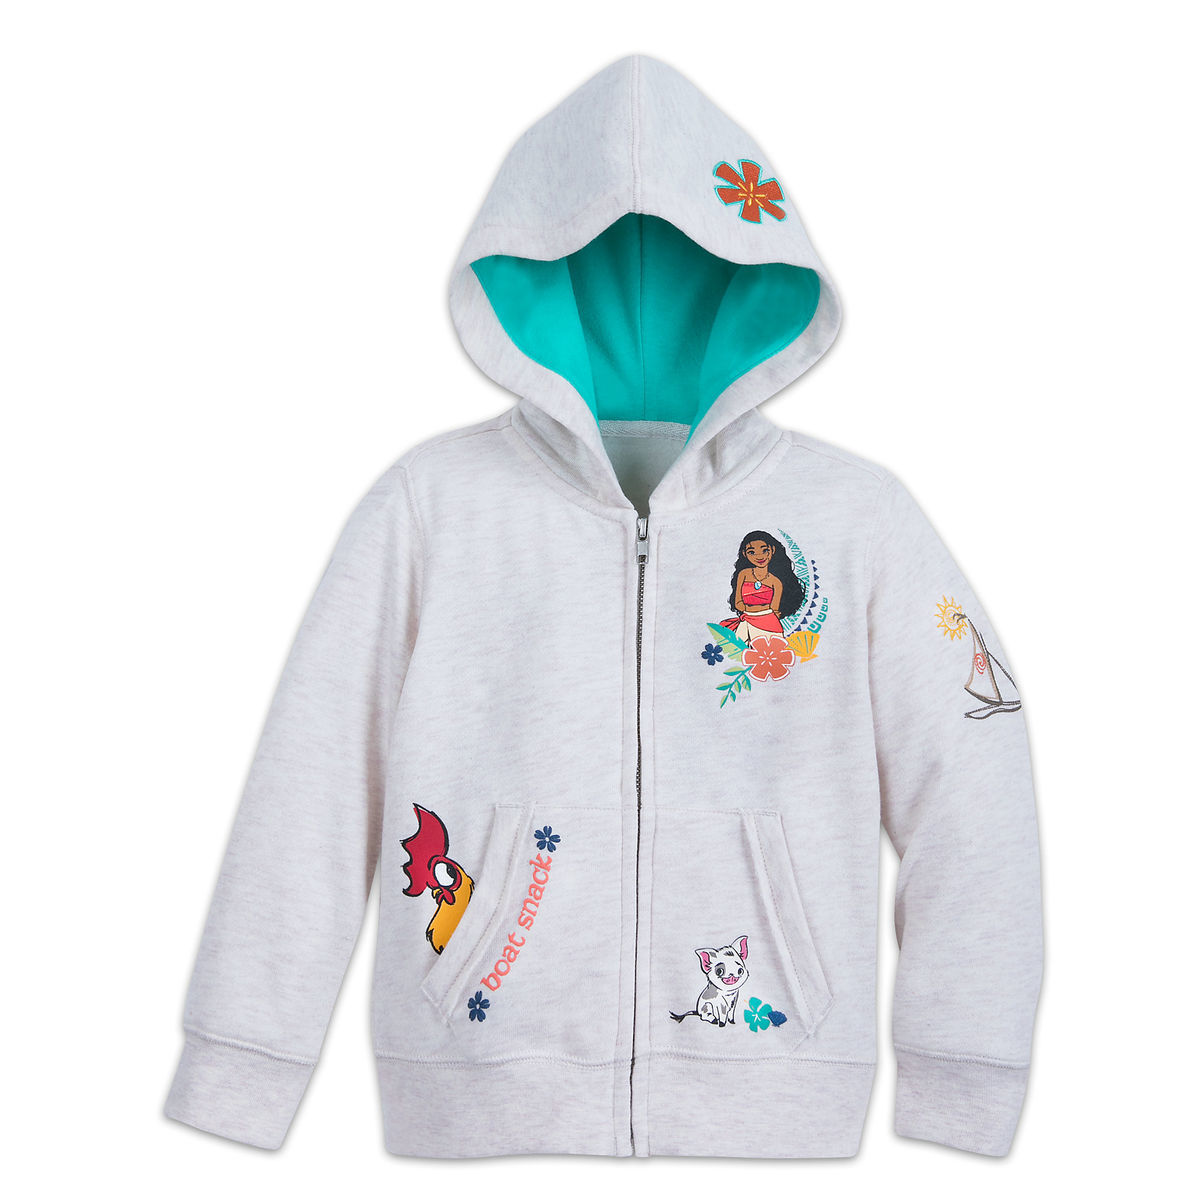 702a80e94f0 Product Image of Moana Zip-Up Hooded Fleece for Girls   1